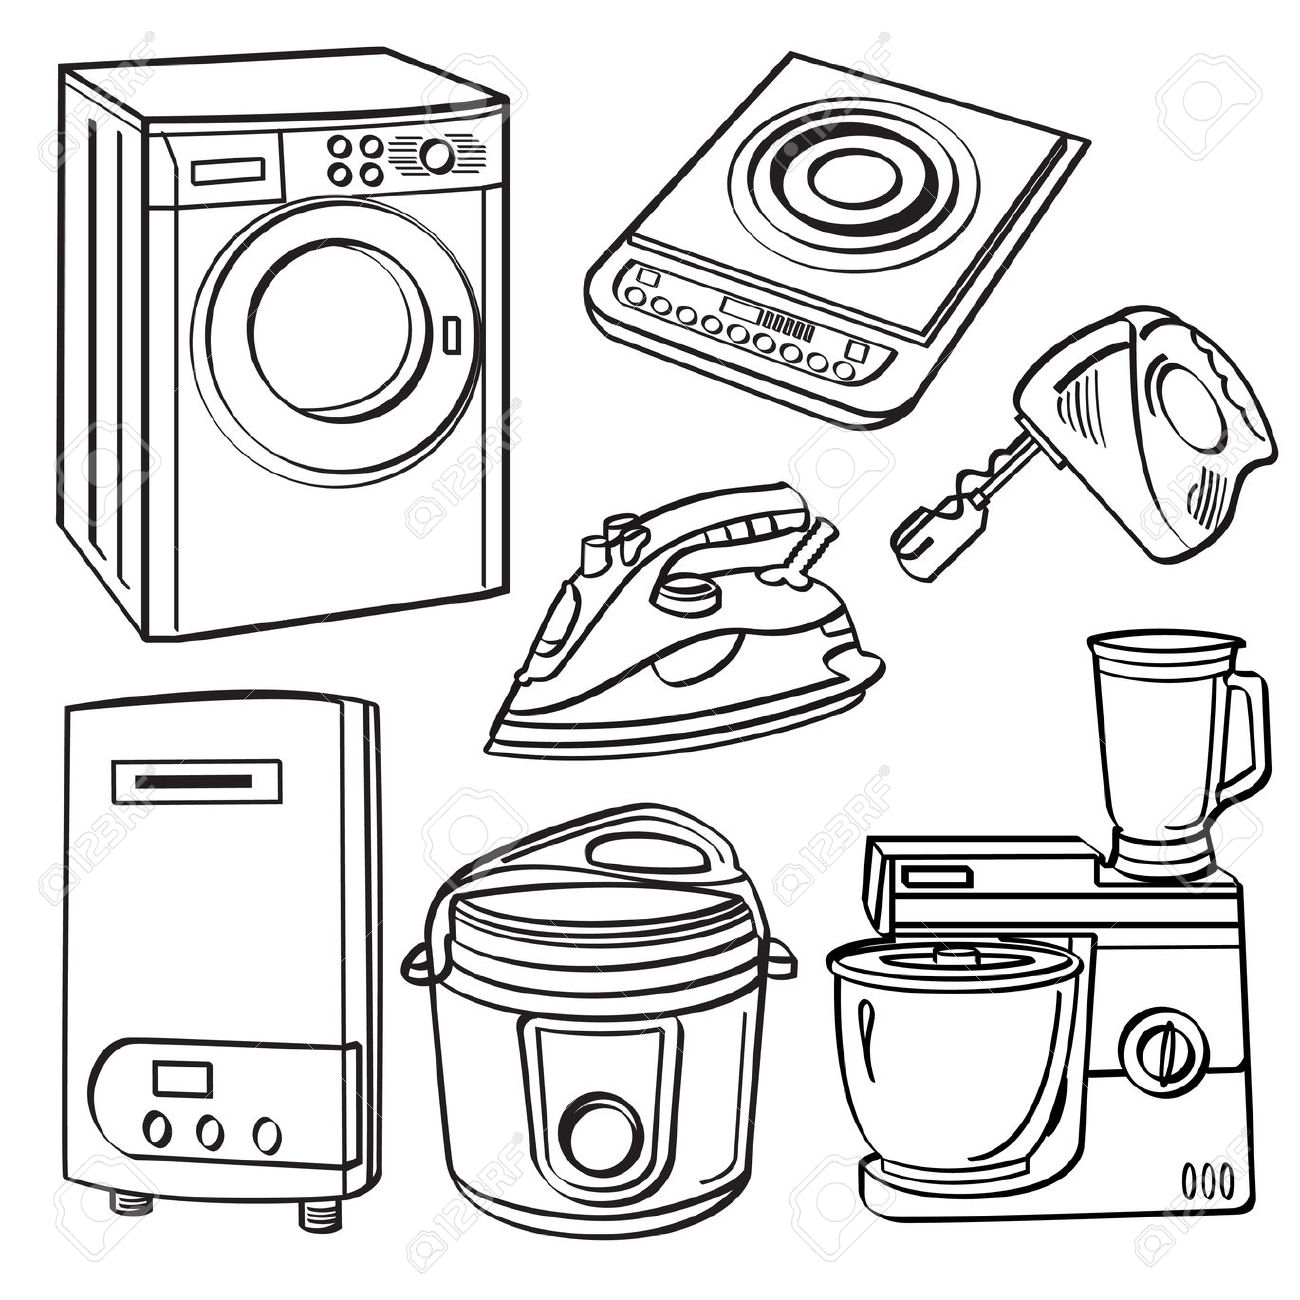 Home Electric Appliances Royalty Free Cliparts, Vectors, And Stock.